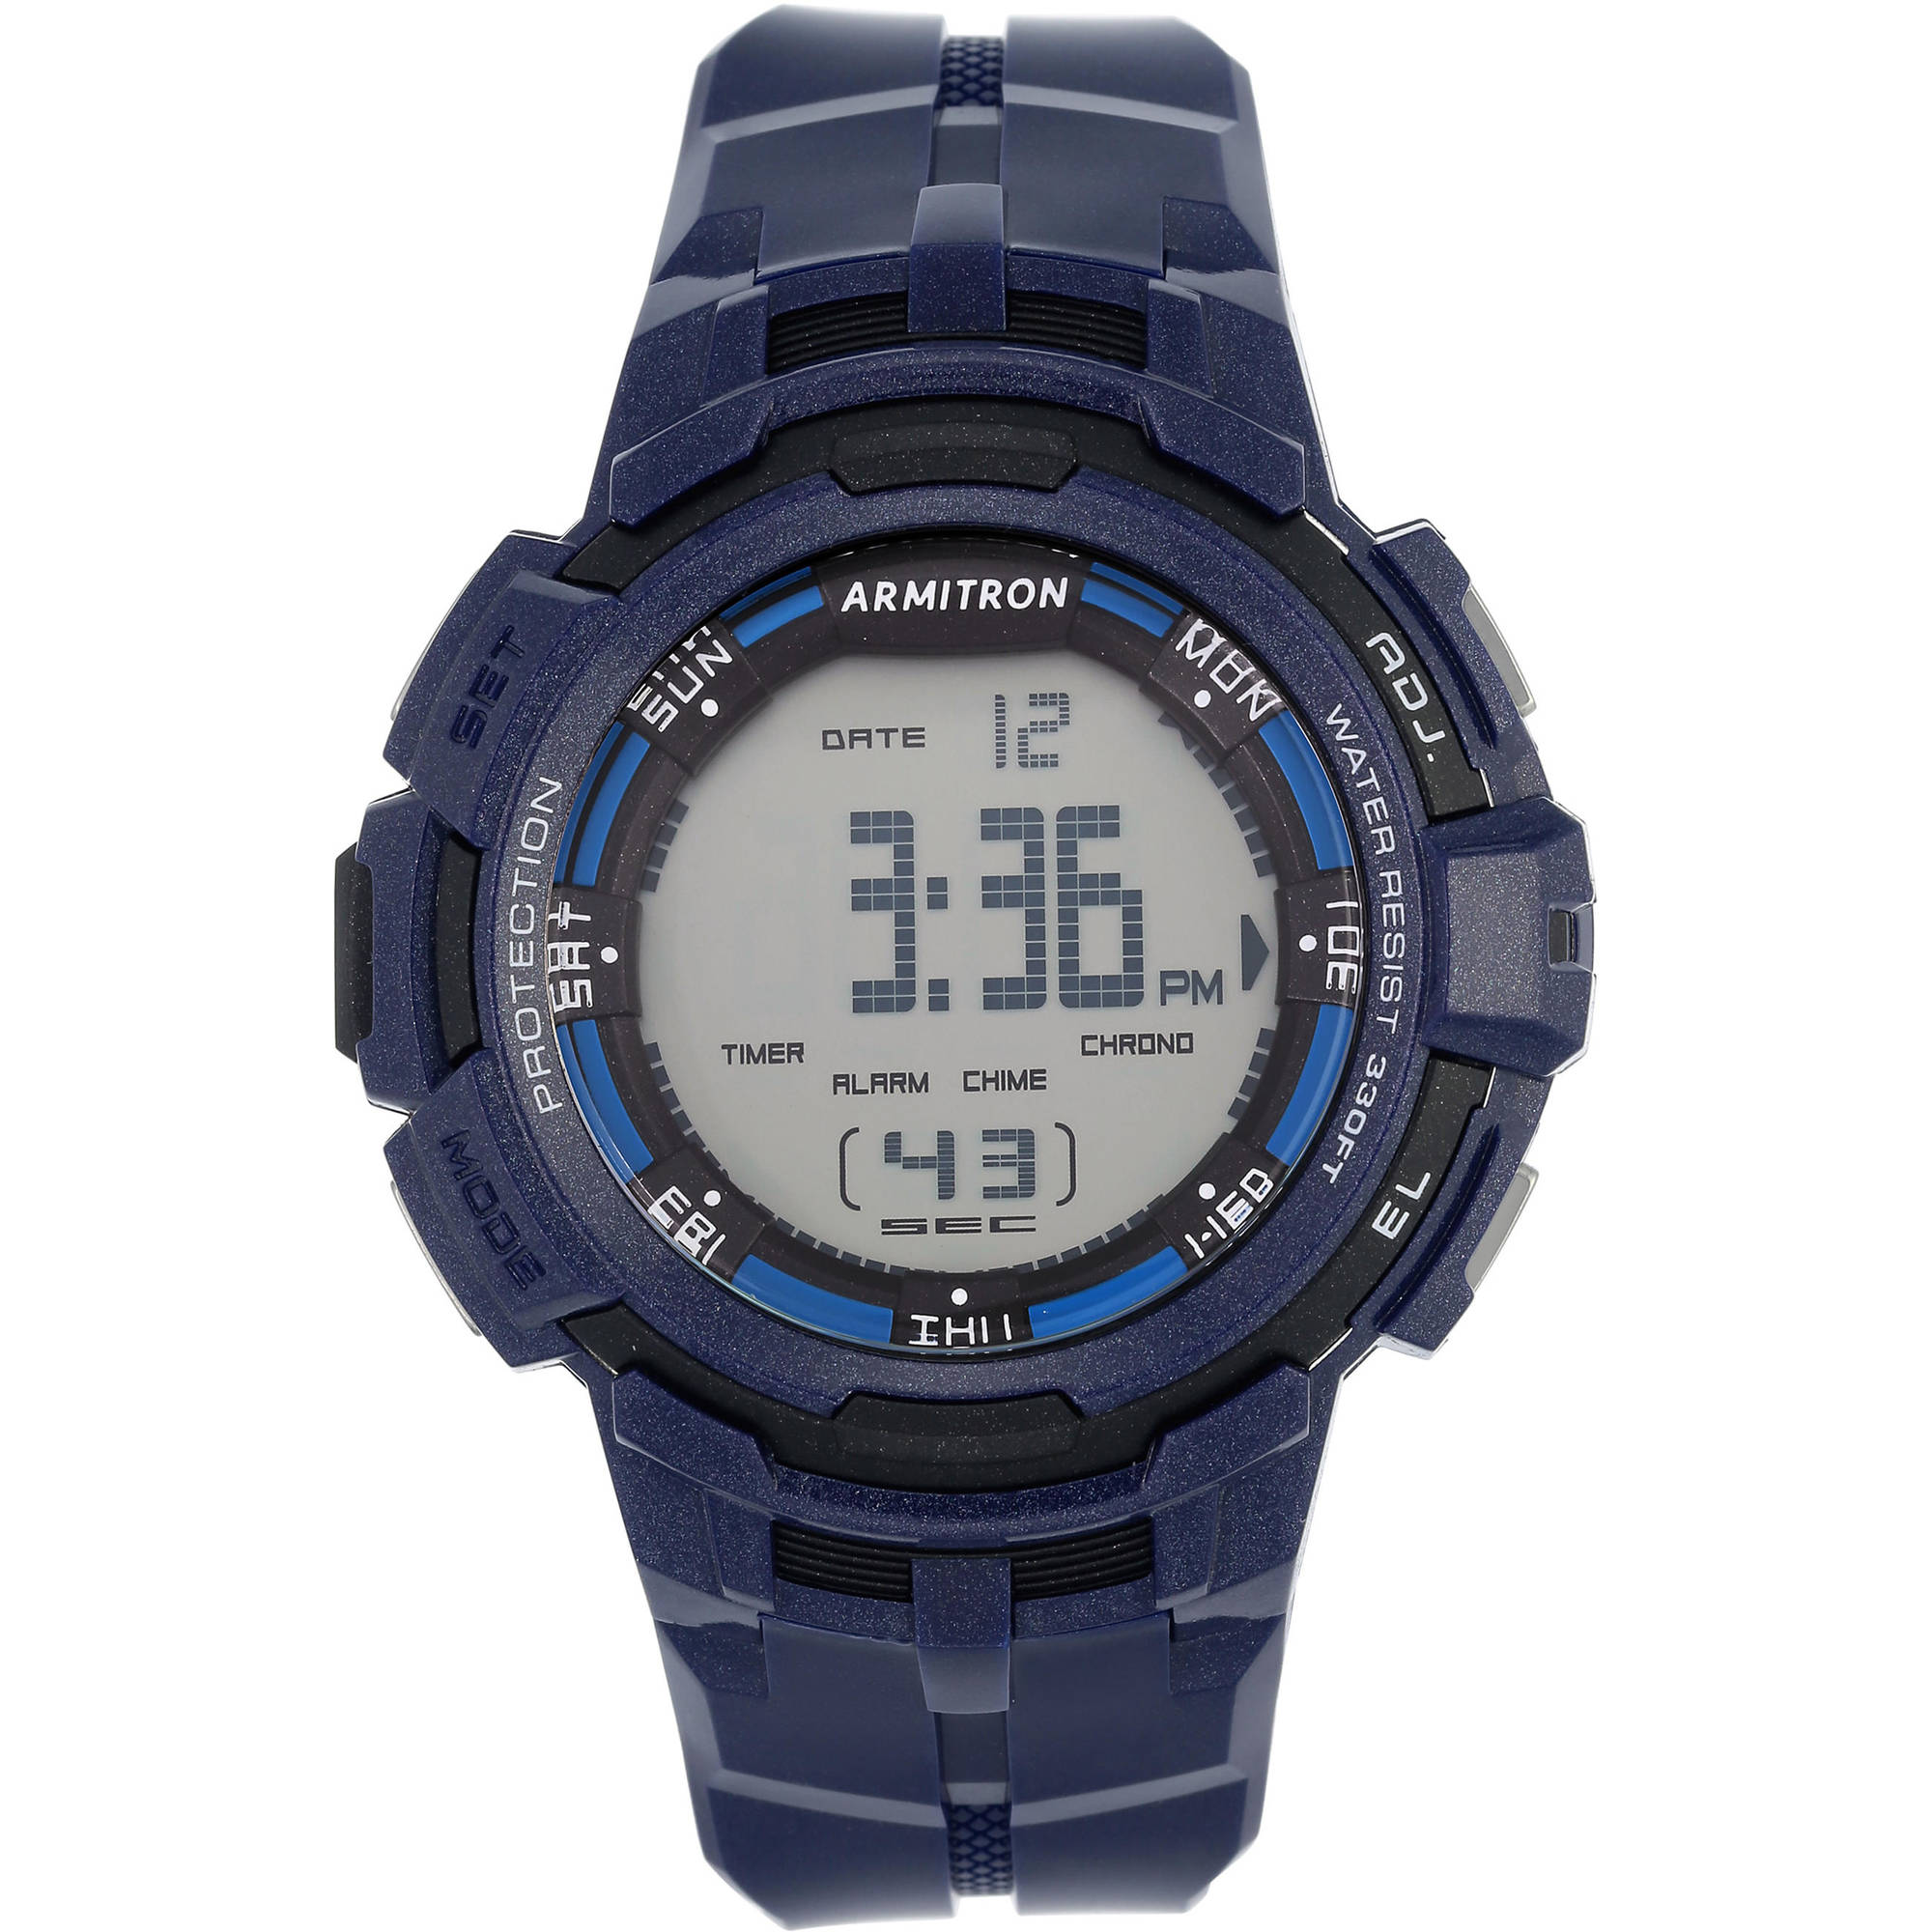 Armitron Men's Round Navy Sports Watch with Resin Band